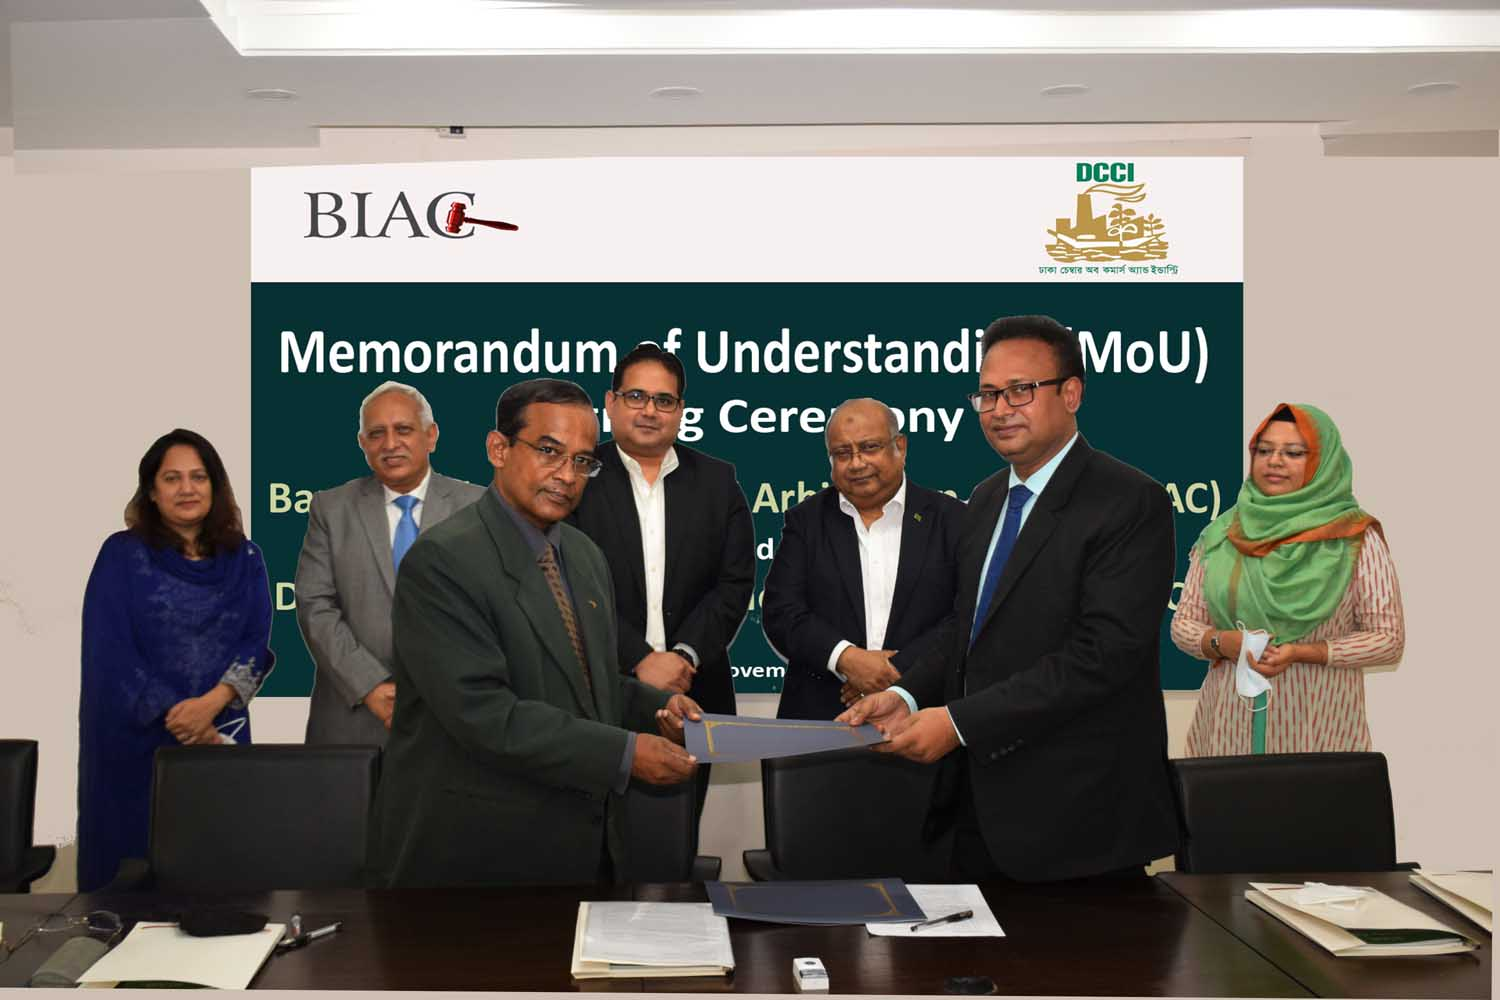 M A Akmall Hossain Azad, Director of Bangladesh International Arbitration Centre (BIAC) and Afsarul Arifeen, Acting Secretary General of DCCI, exchanging documents after signing a Memorandum of Understanding (MoU) at the BIAC secretariat in the city on Thursday. BIAC's CEO Muhammad A. (Rumee) Ali and DCCI President Shams Mahmud, among others, were present.